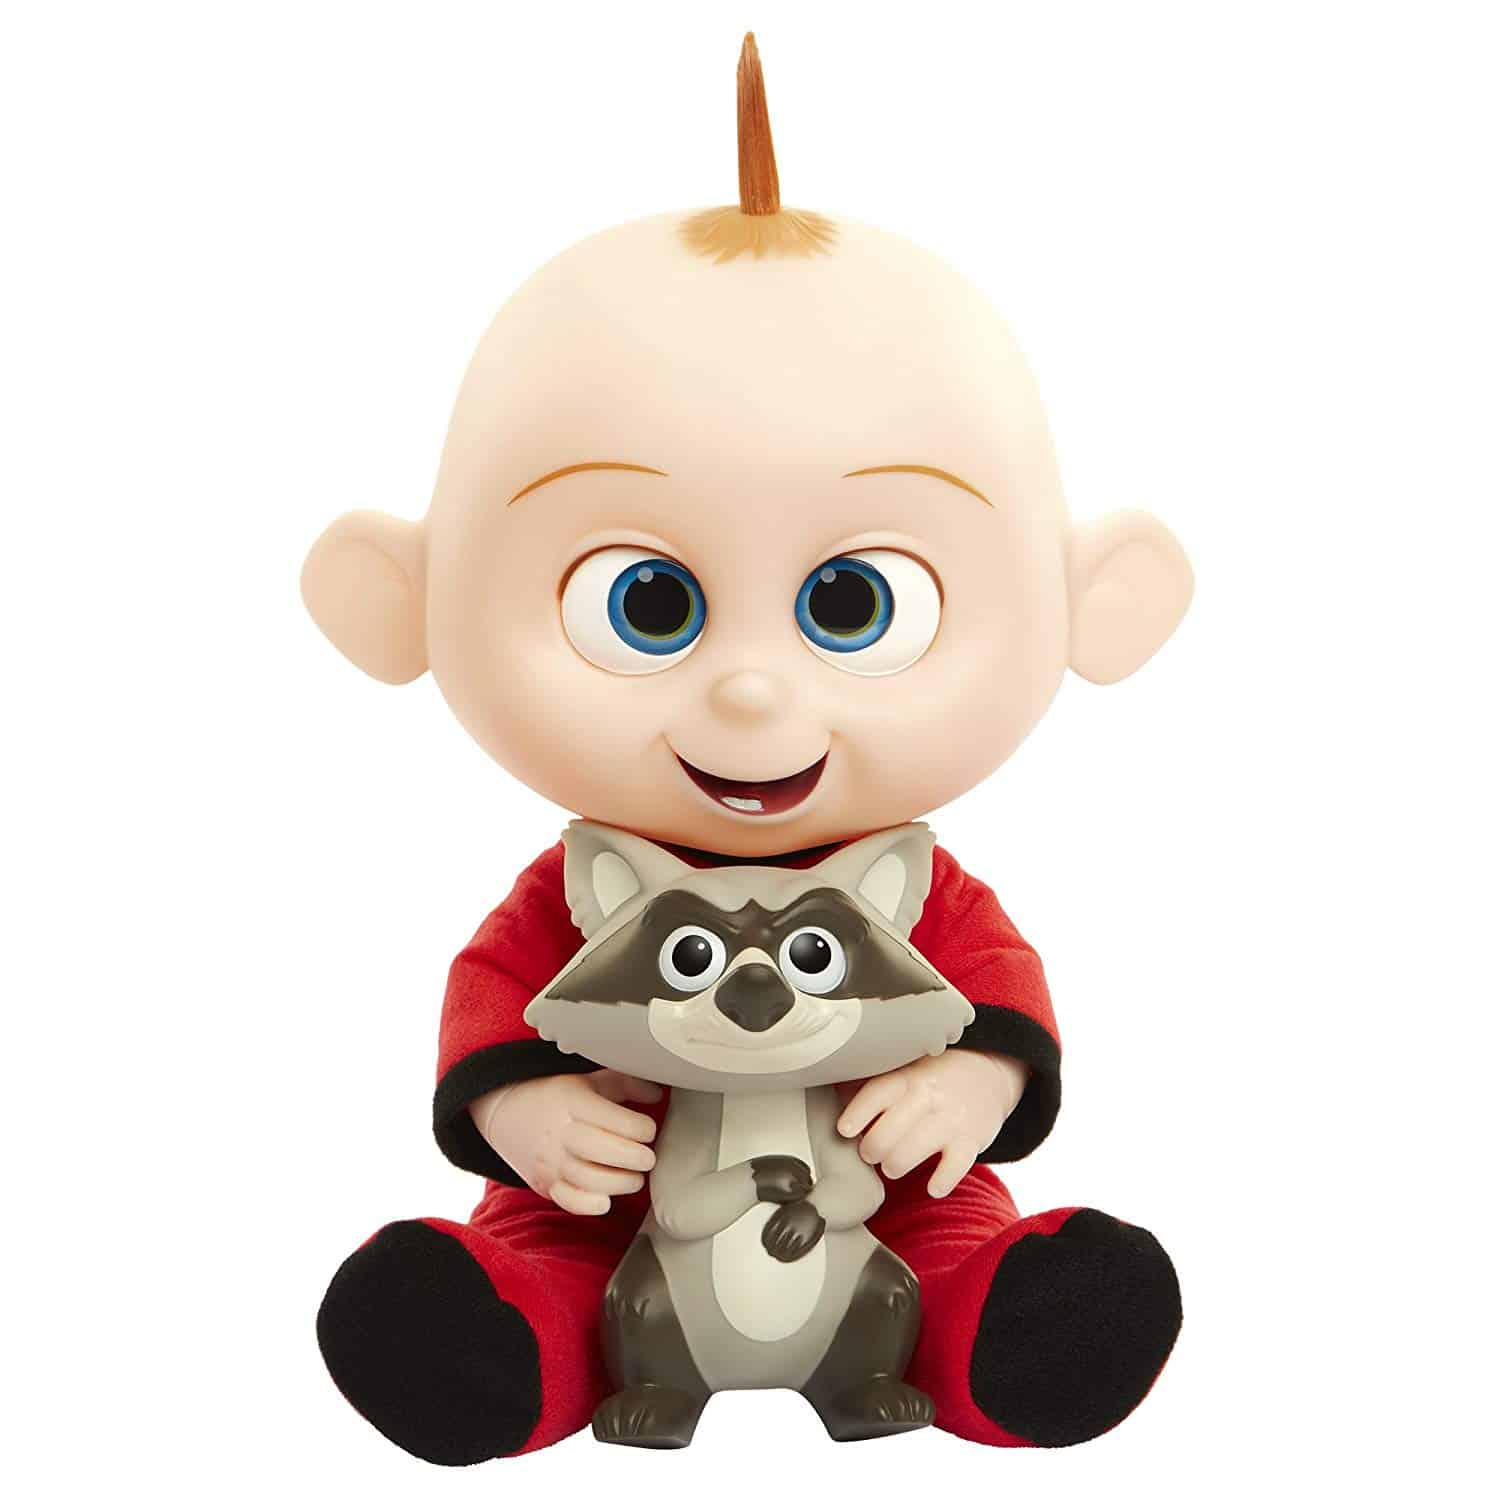 The Incredibles 2 Jack Jack Plush Figure 2018 Holiday Gift Guide